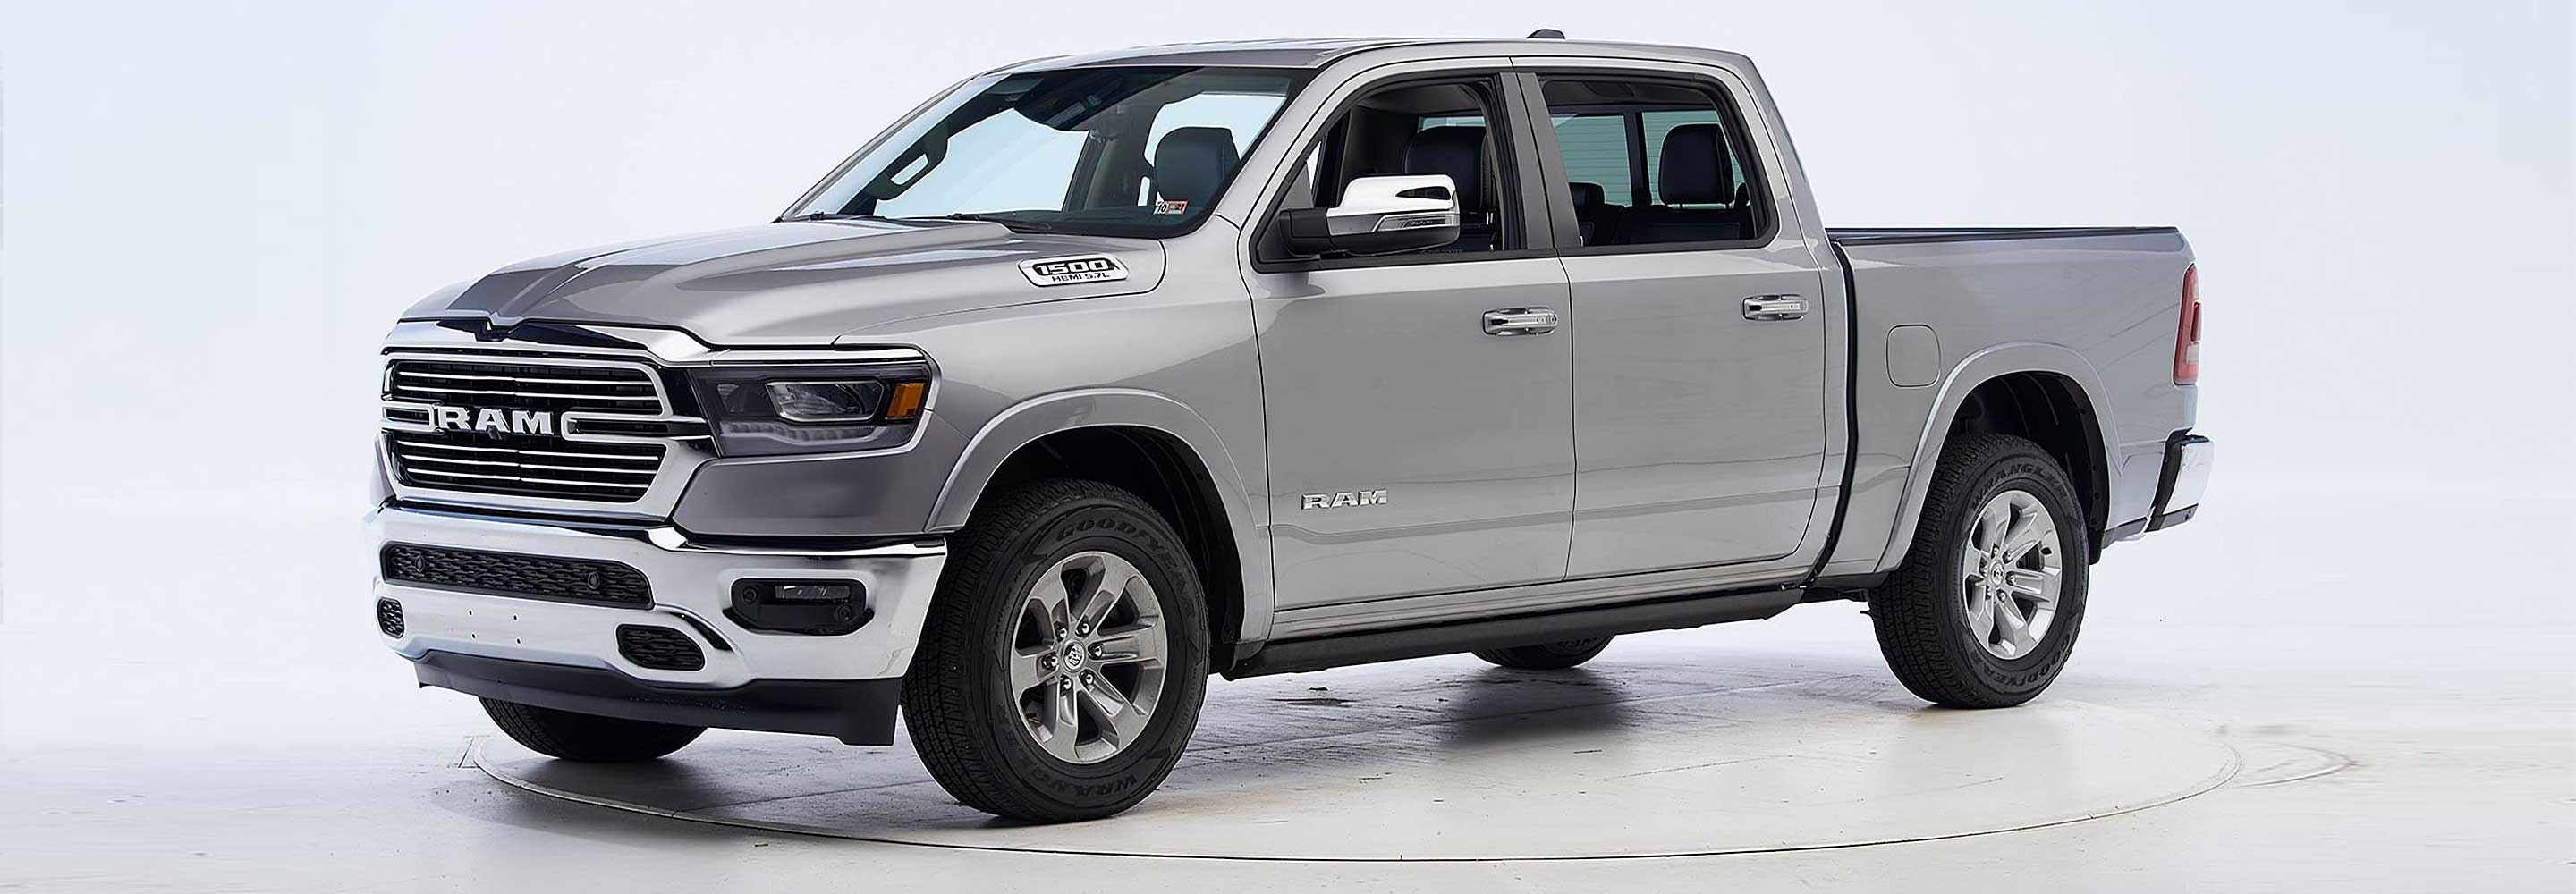 Only Pickup to Earn IIHS Top Safety Pick Rating in 2021: Ram 1500